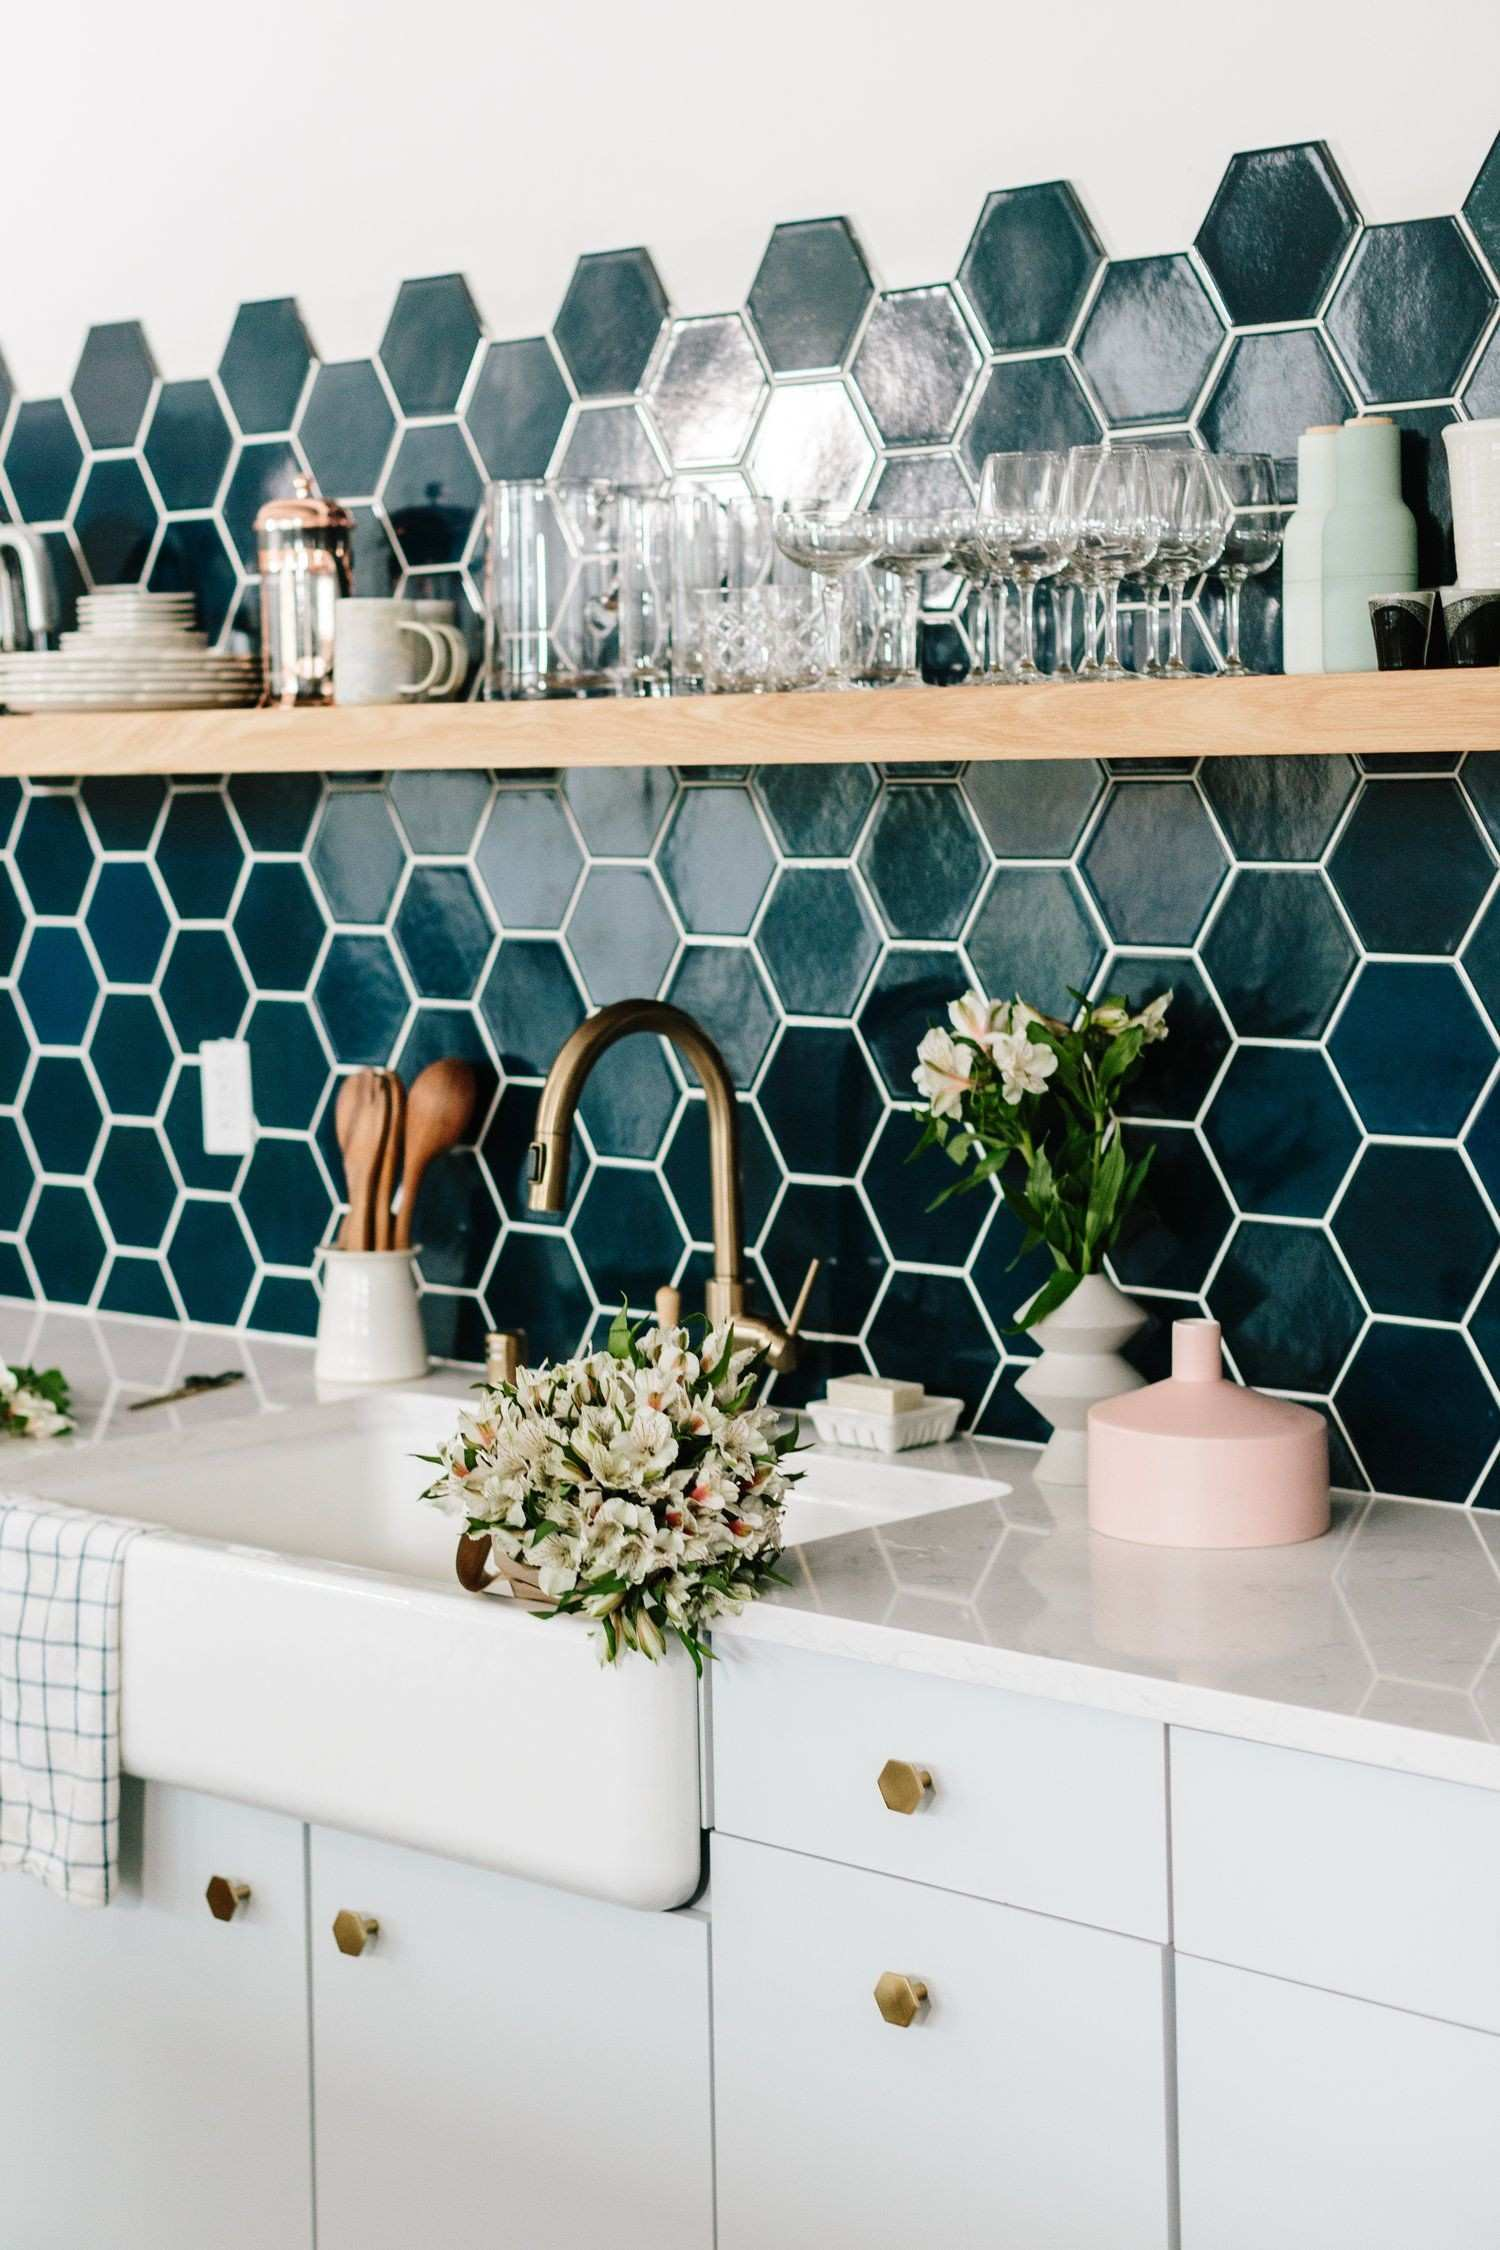 Best 12 Decorative Kitchen Tile Ideas Pinterest